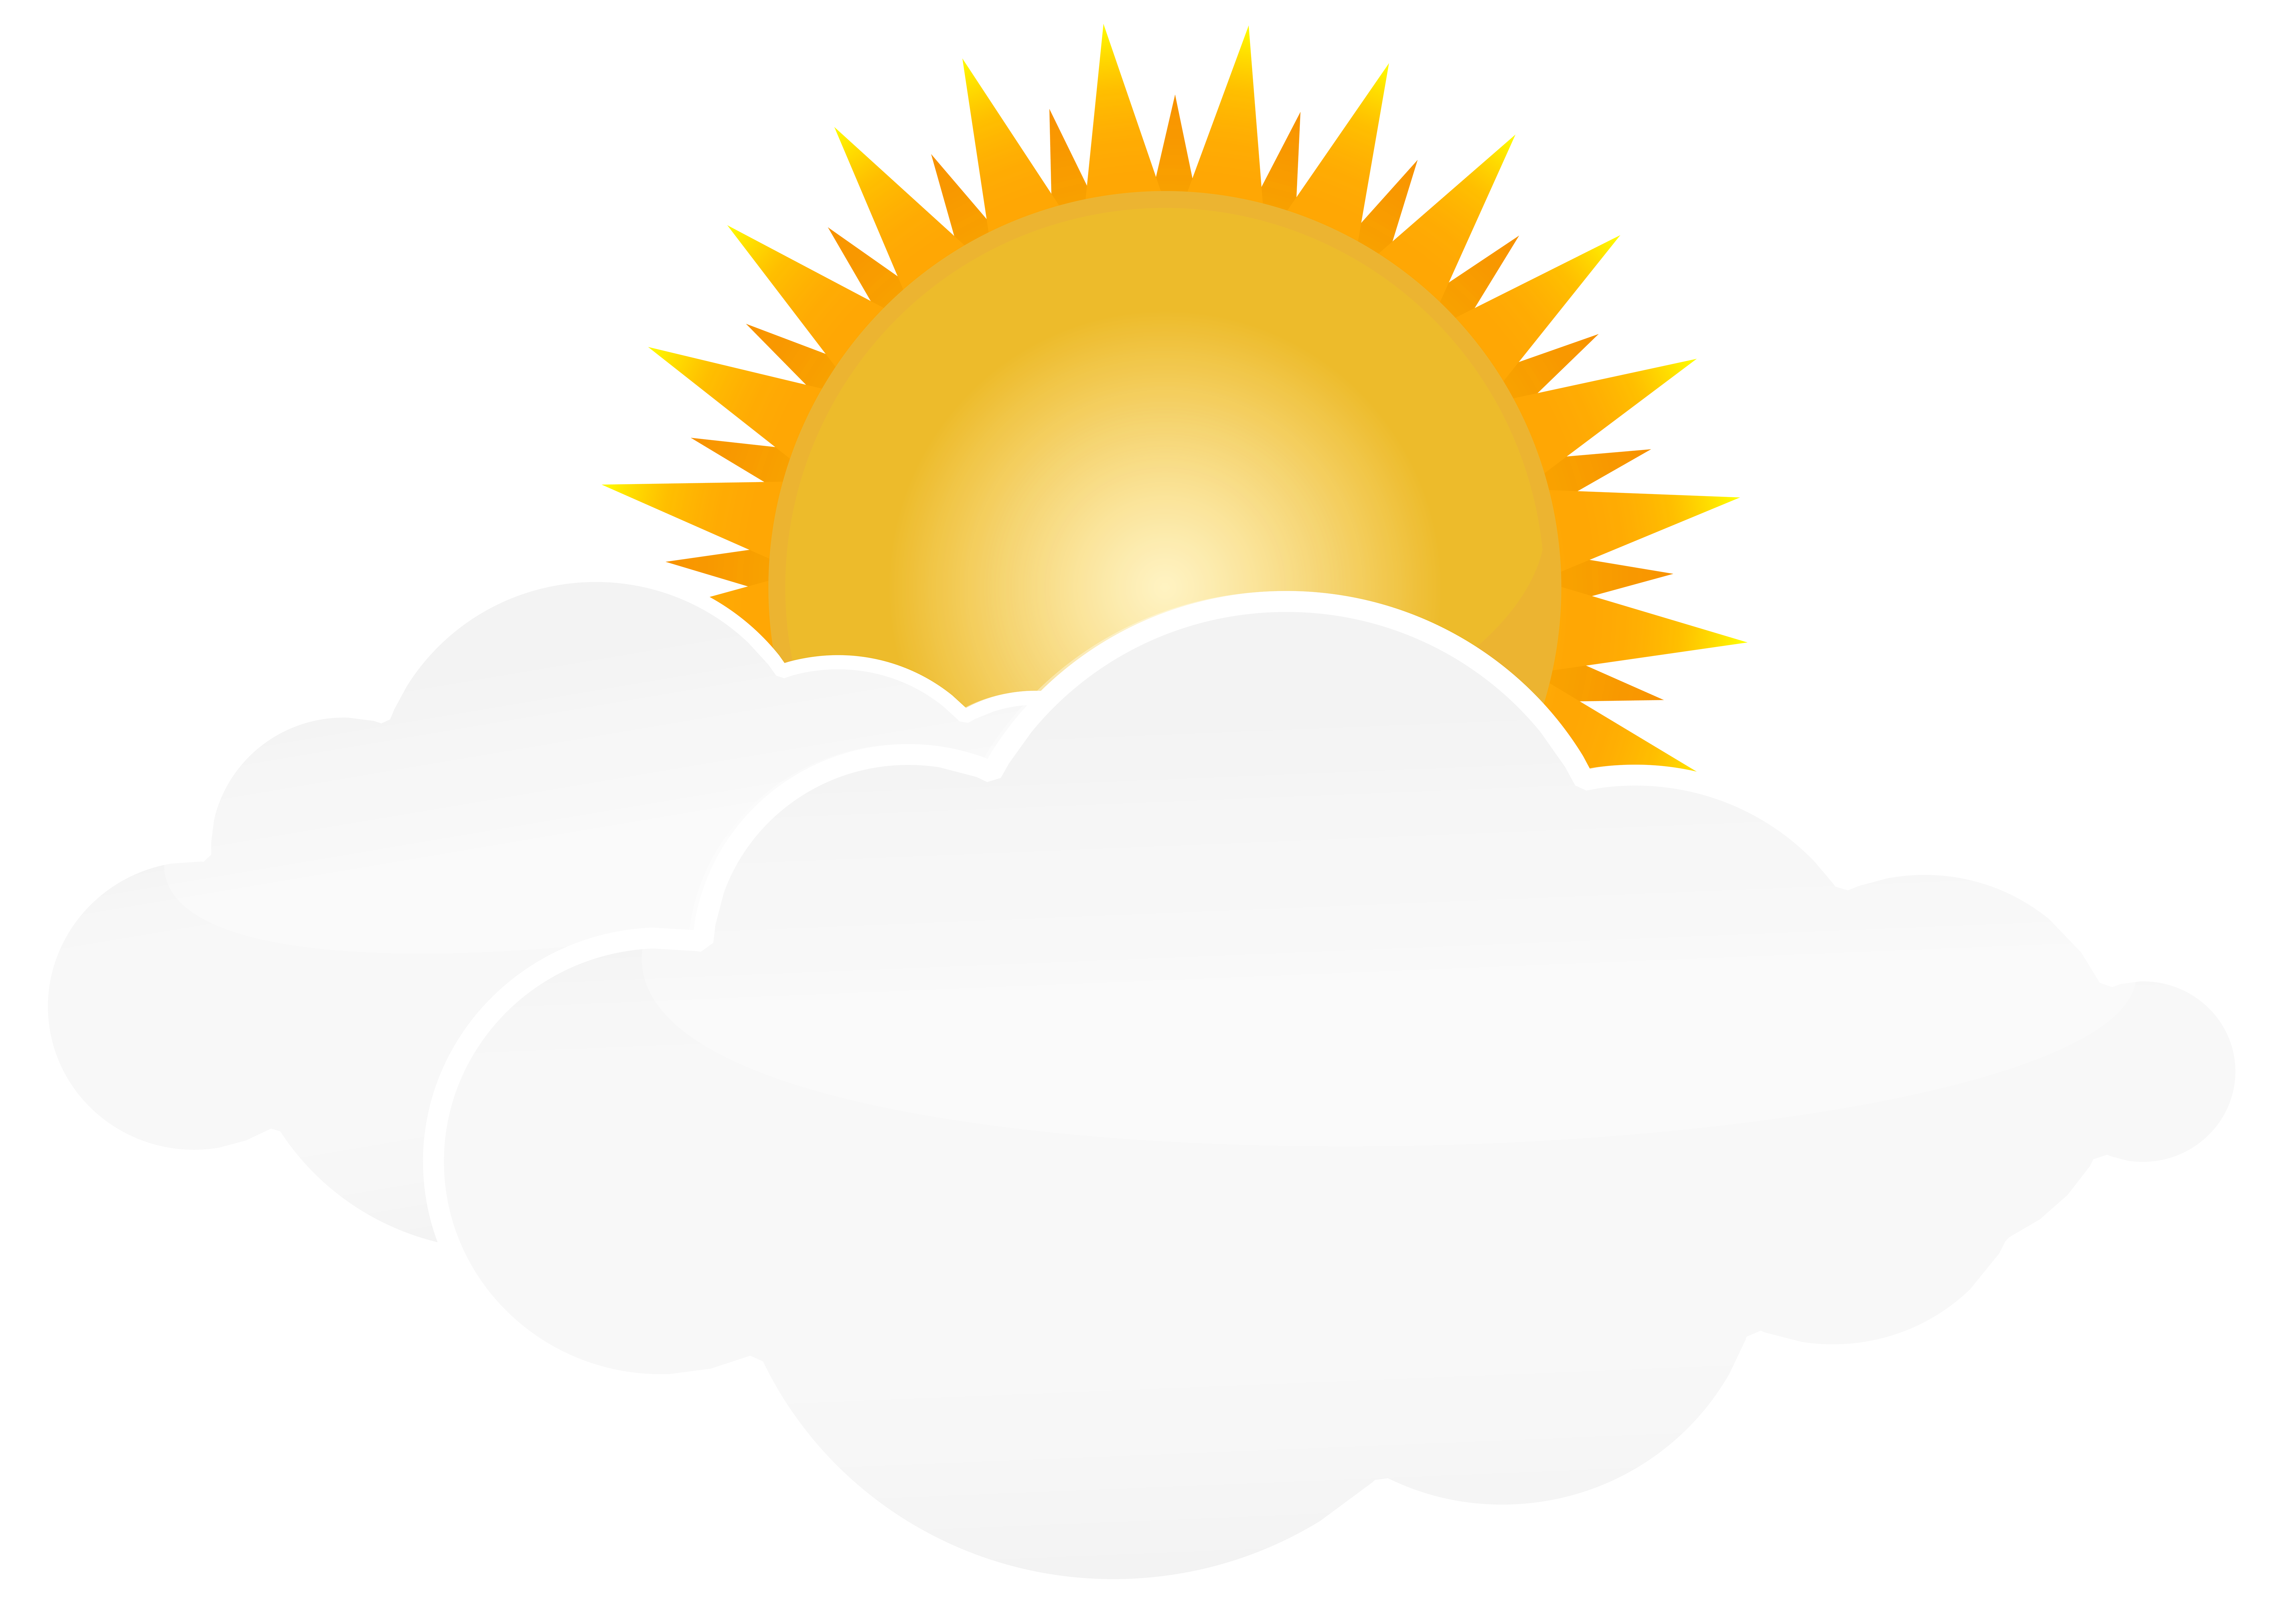 Sky and sun clipart clip art free Sunlight Cloud Clip art - Sun with Clouds PNG Transparent Clip Art ... clip art free